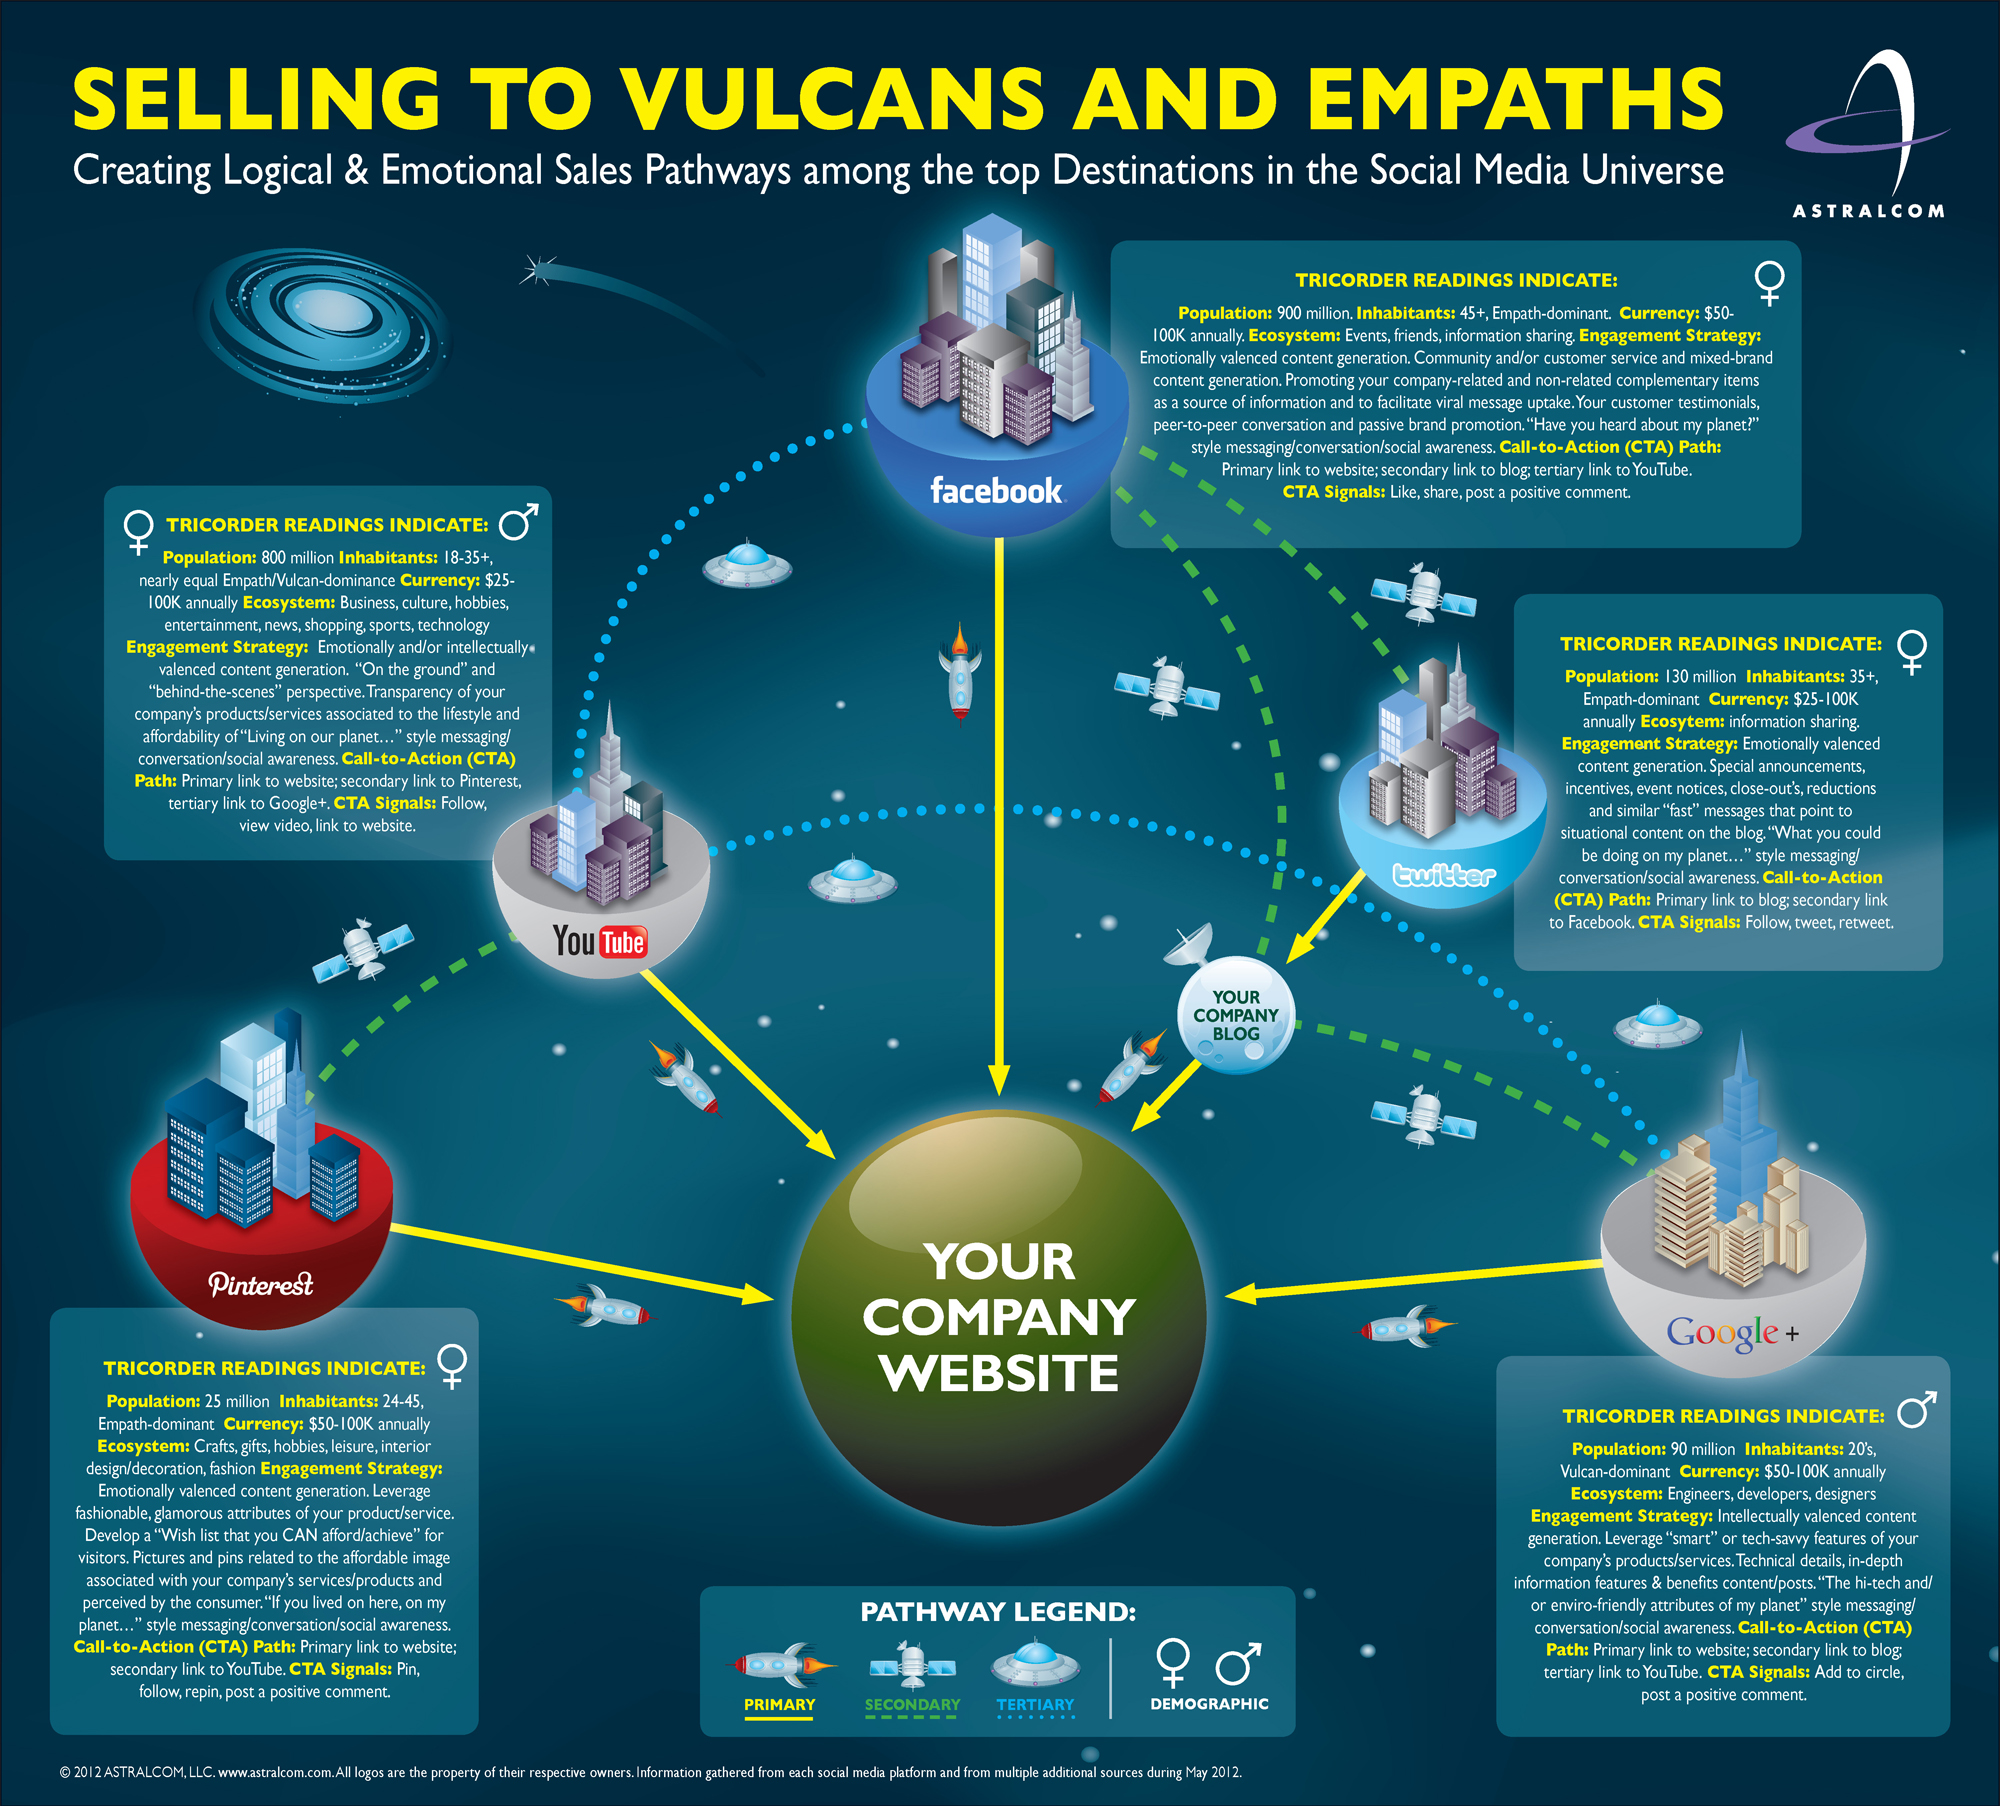 Selling to Vulcans and Empaths – Social Media Management